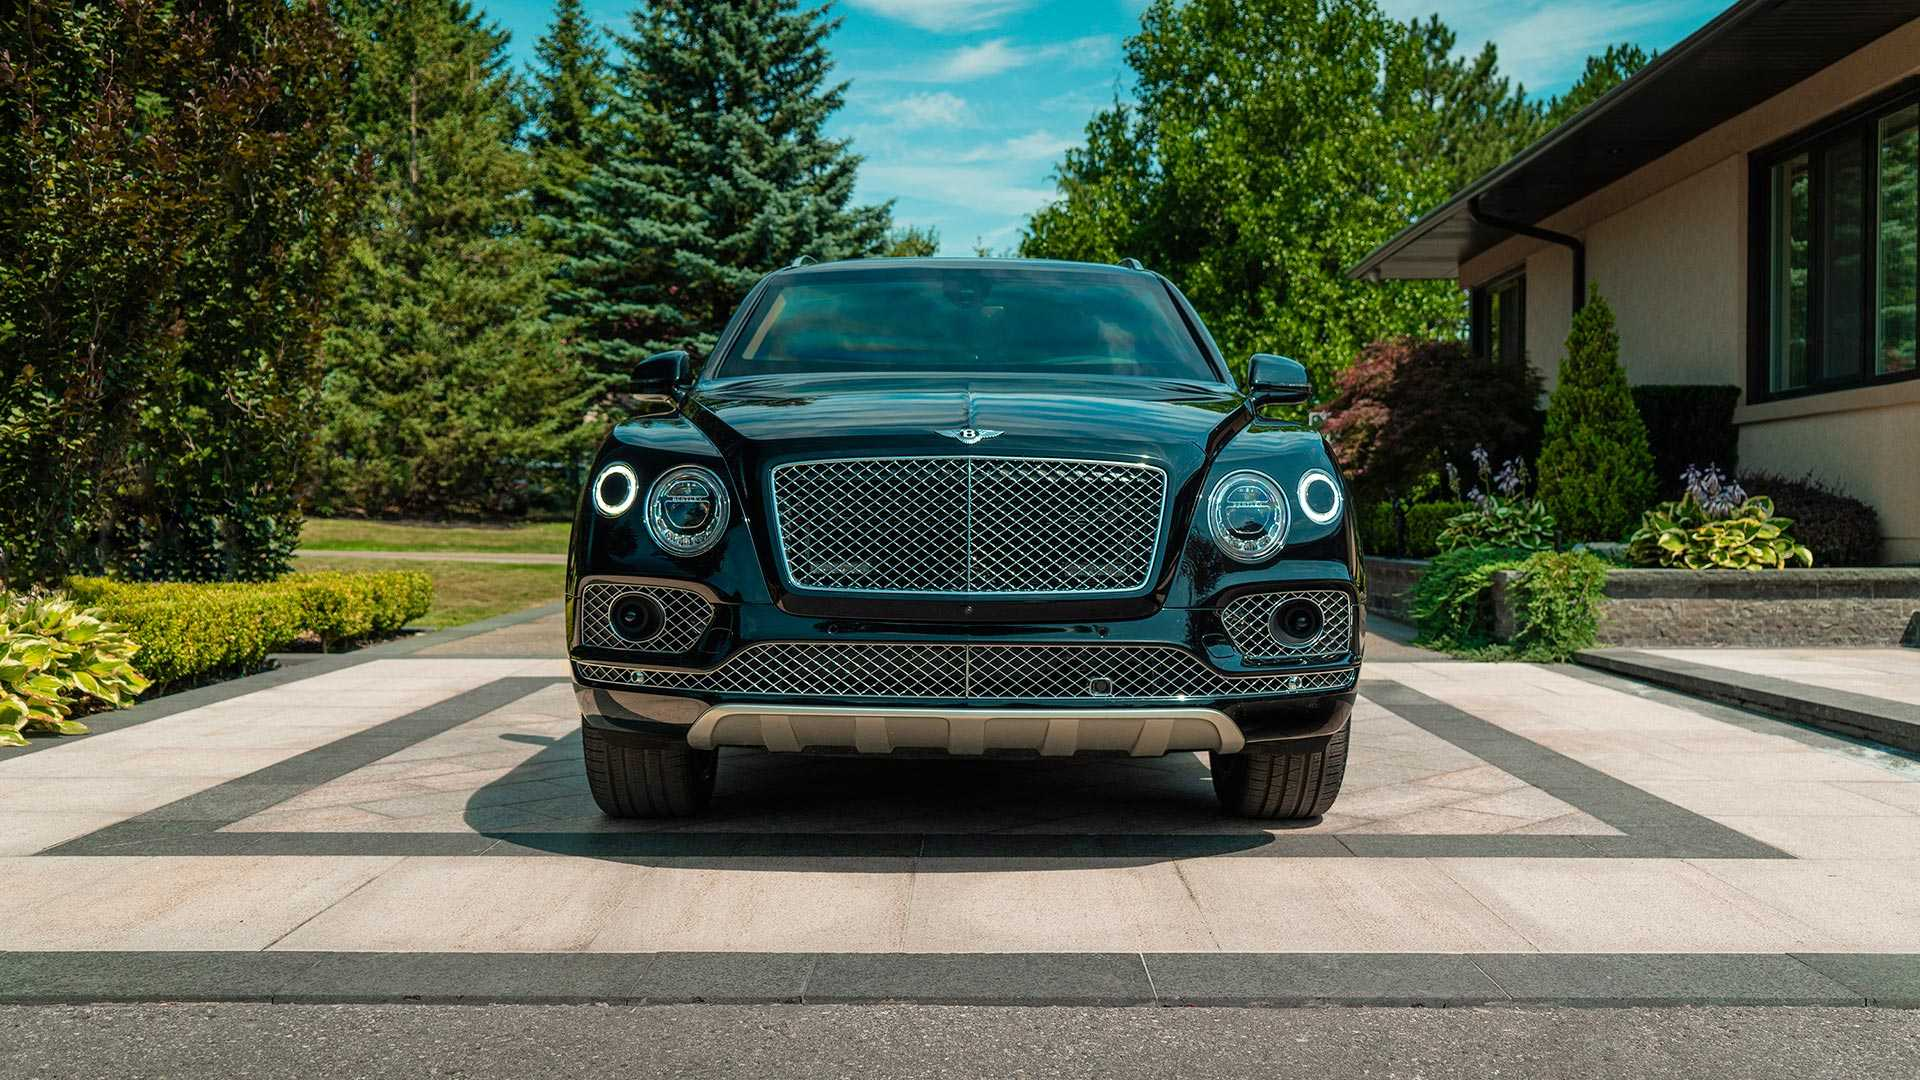 armored-bentley-bentayga-by-inkas-2